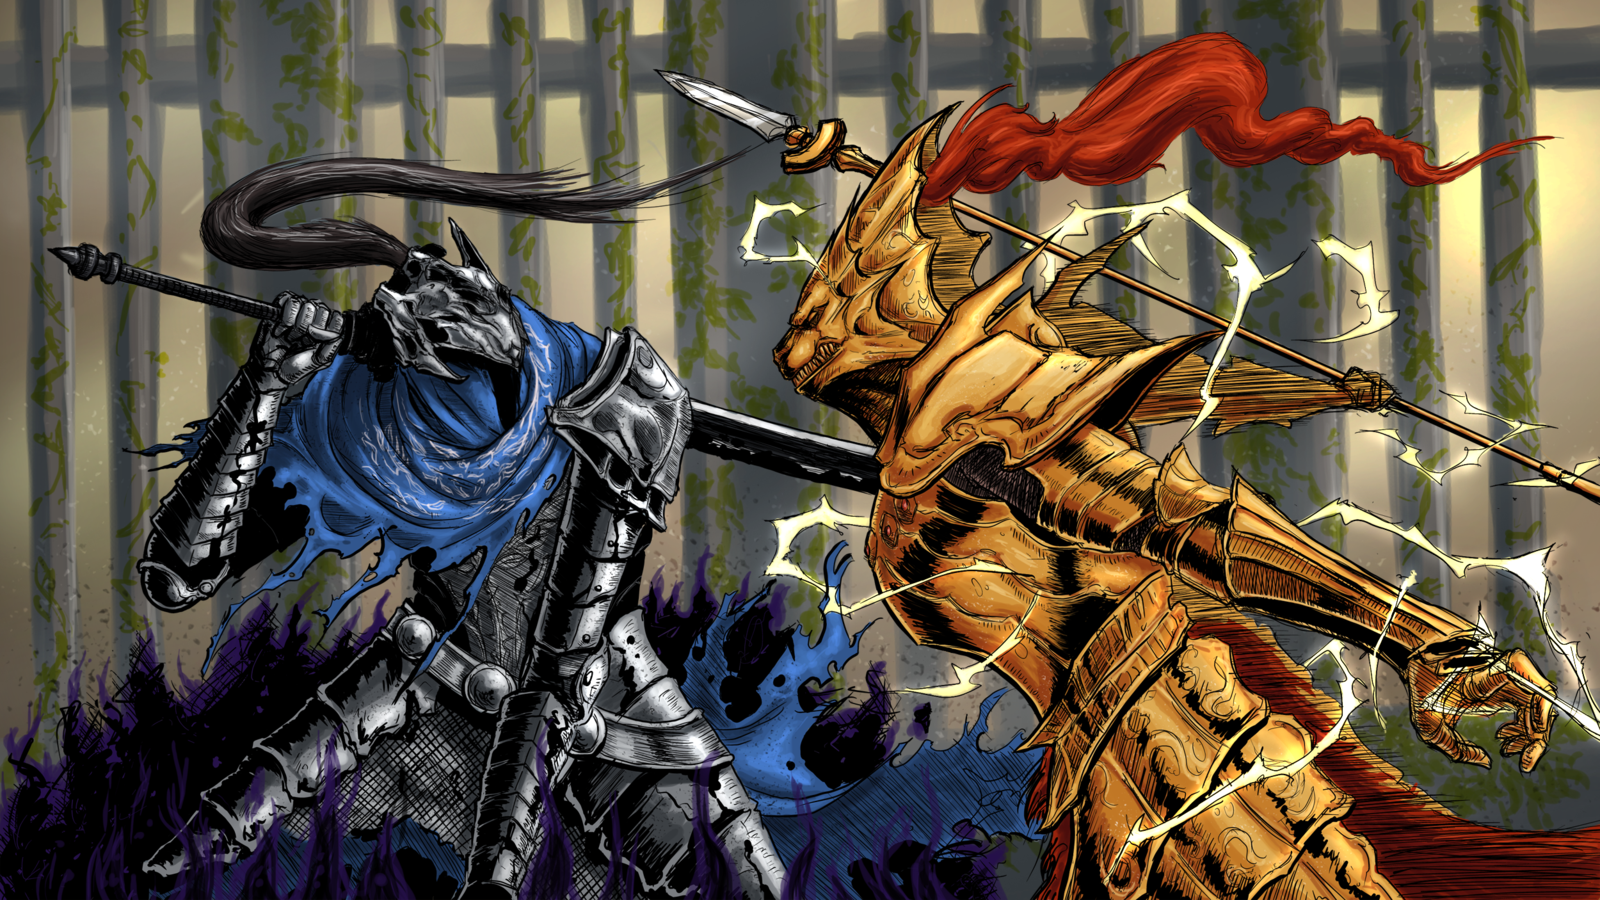 Dark Souls Ornstein Wallpaper High Quality Resolution Is Cool Wallpapers